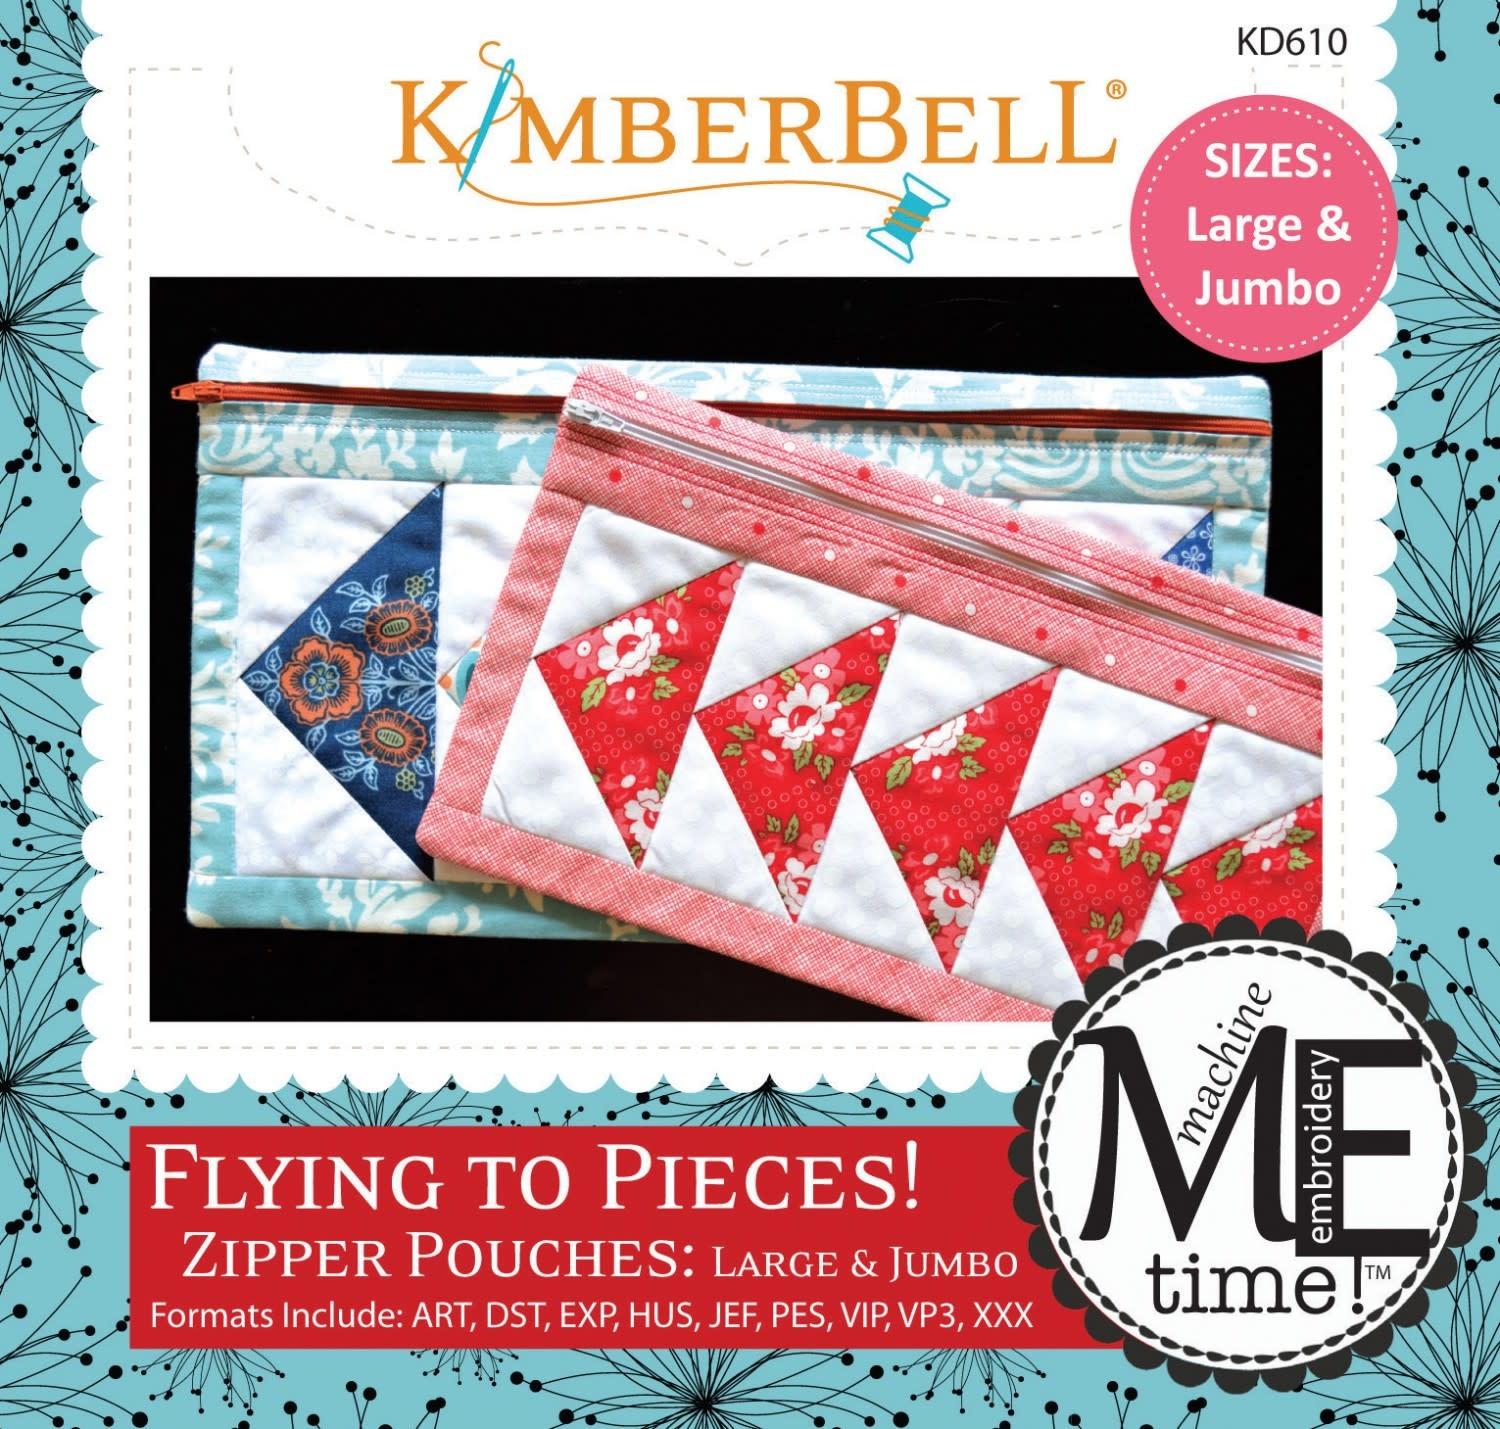 KIMBERBELL DESIGNS ME Time: Flying to Pieces Zipper Pouch (Large & Jumbo) Embroidery CD